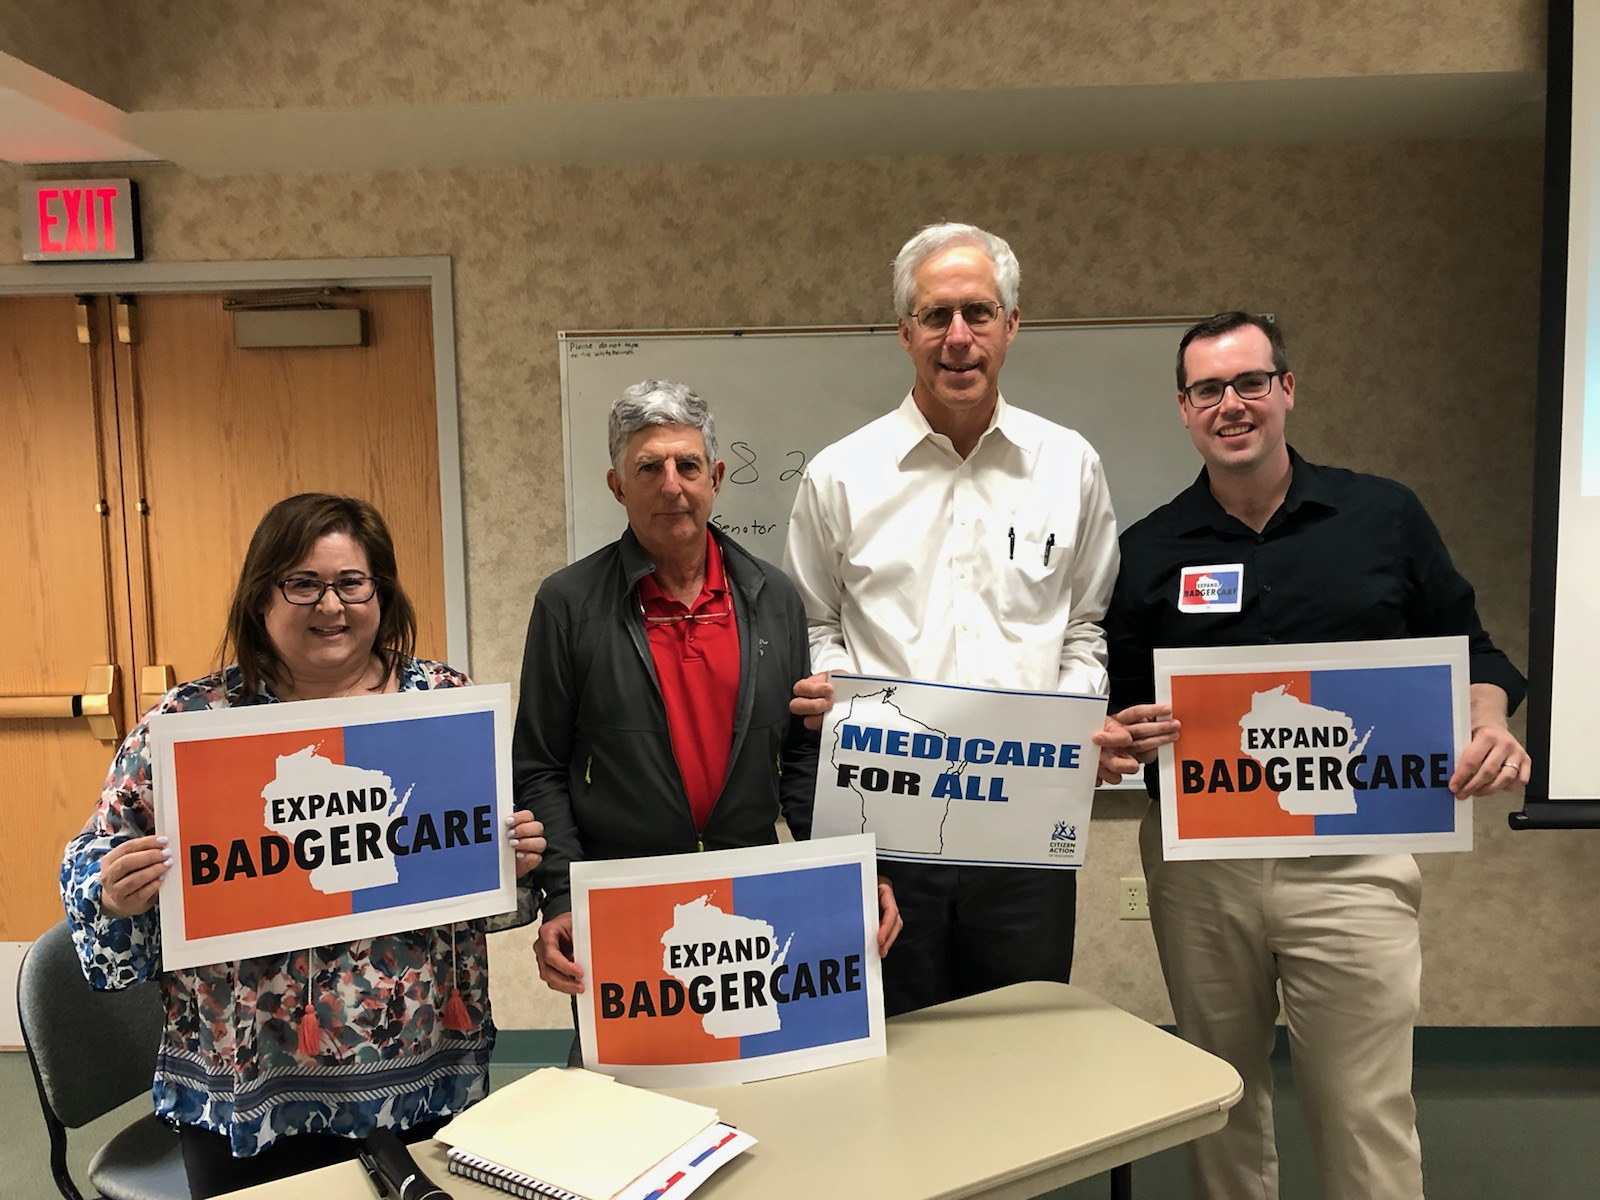 Pictured from left to right- State Rep. Lisa Subeck (D-Dane), Dr. Neil Bard, Dr. Mark Neumann and Kevin Kane